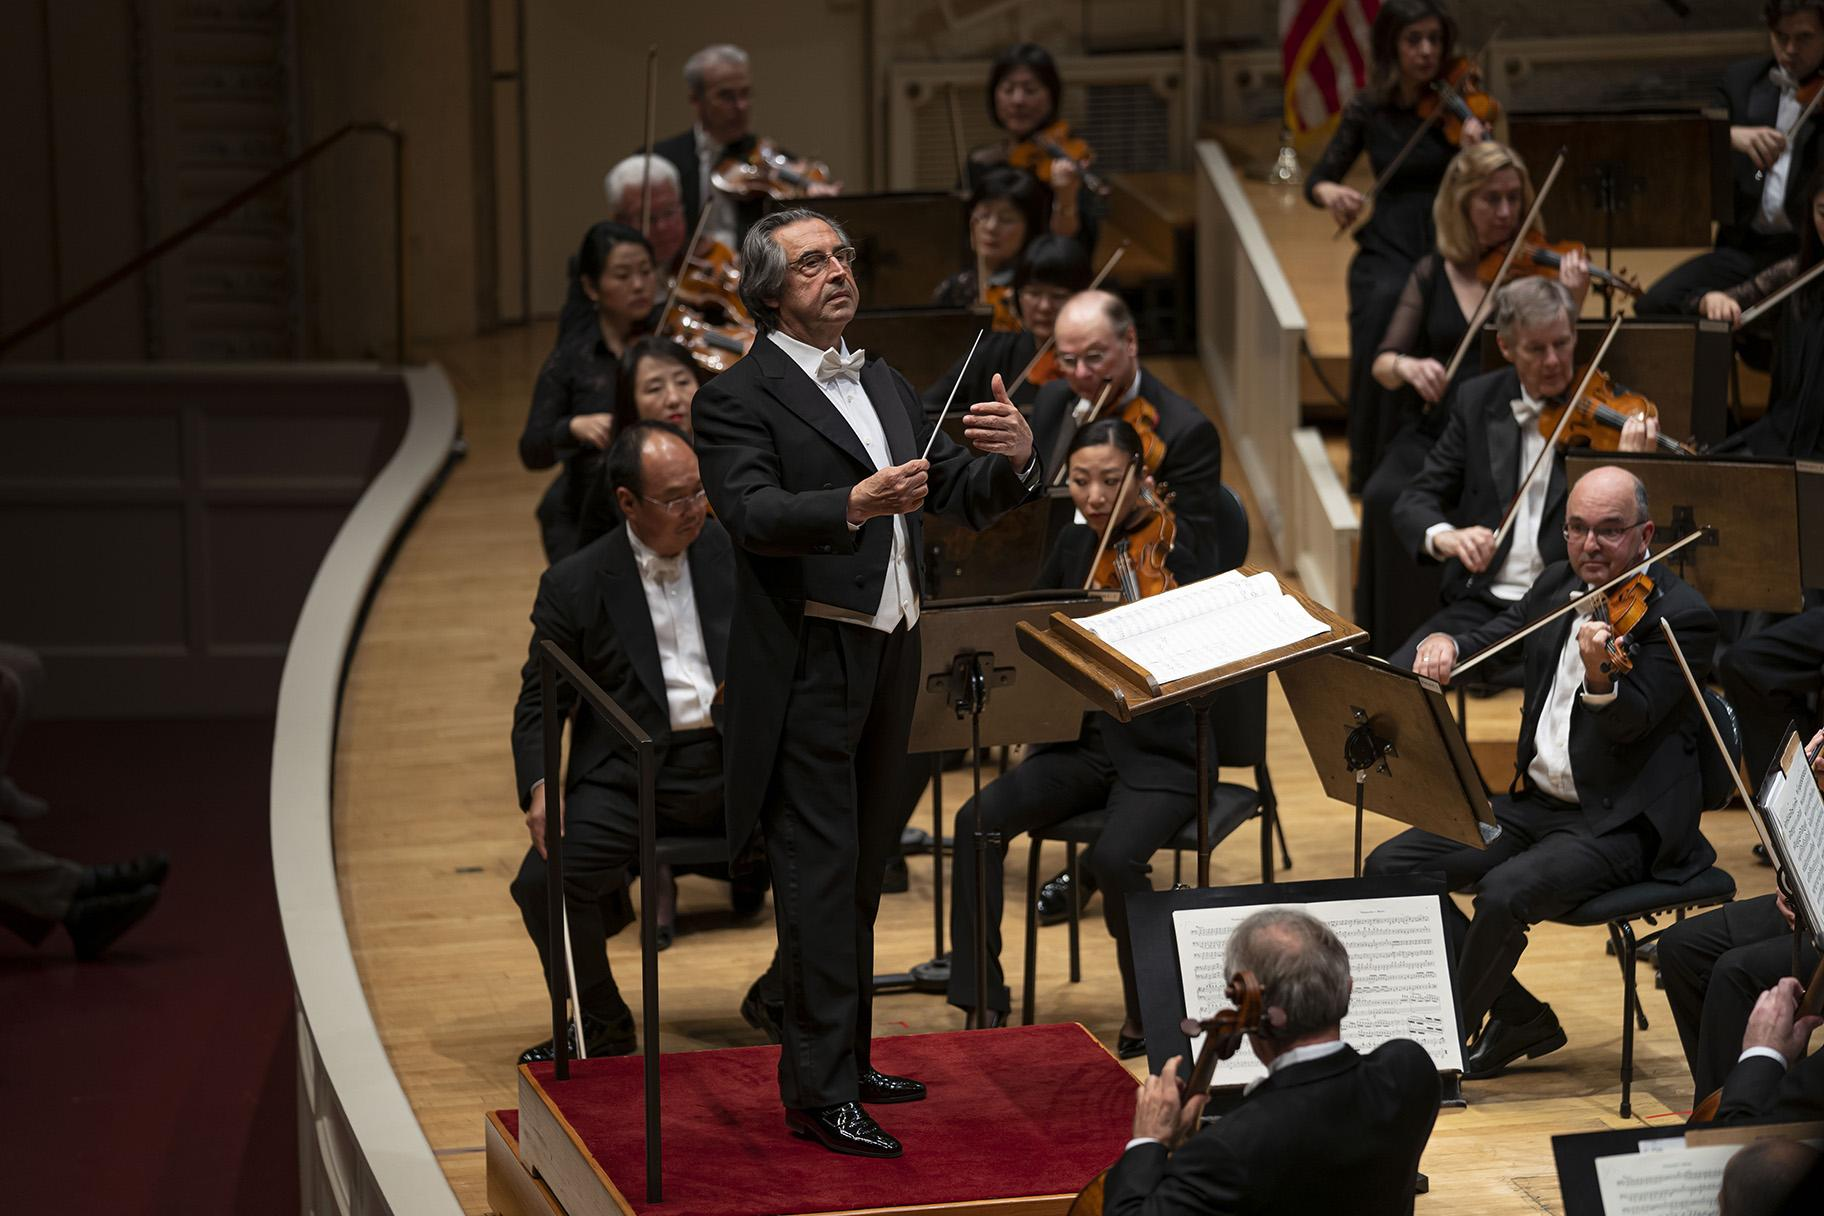 Music Director Riccardo Muti leads the Chicago Symphony Orchestra in a program that includes Shostakovich's Symphony No. 6, works by Mendelssohn and Scriabin, as well as Grieg's Piano Concerto featuring pianist Leif Ove Andsnes as soloist on Sept. 19 2019, in Orchestra Hall. (Photo by Todd Rosenberg)